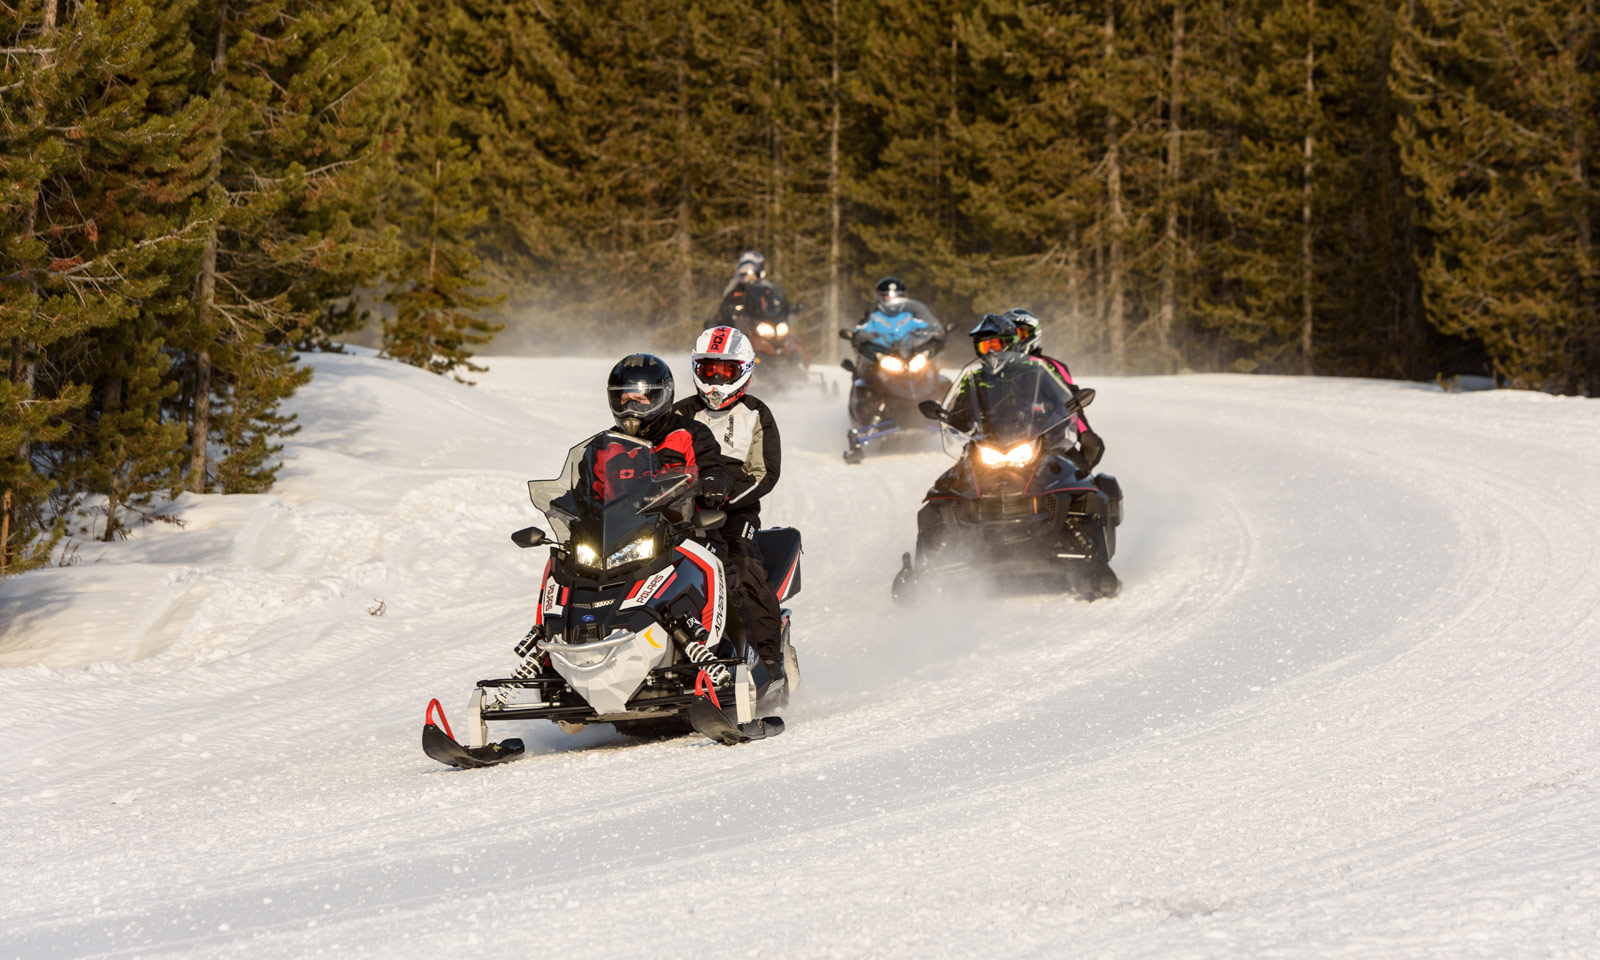 Snowmobiler riding with passenger on trail